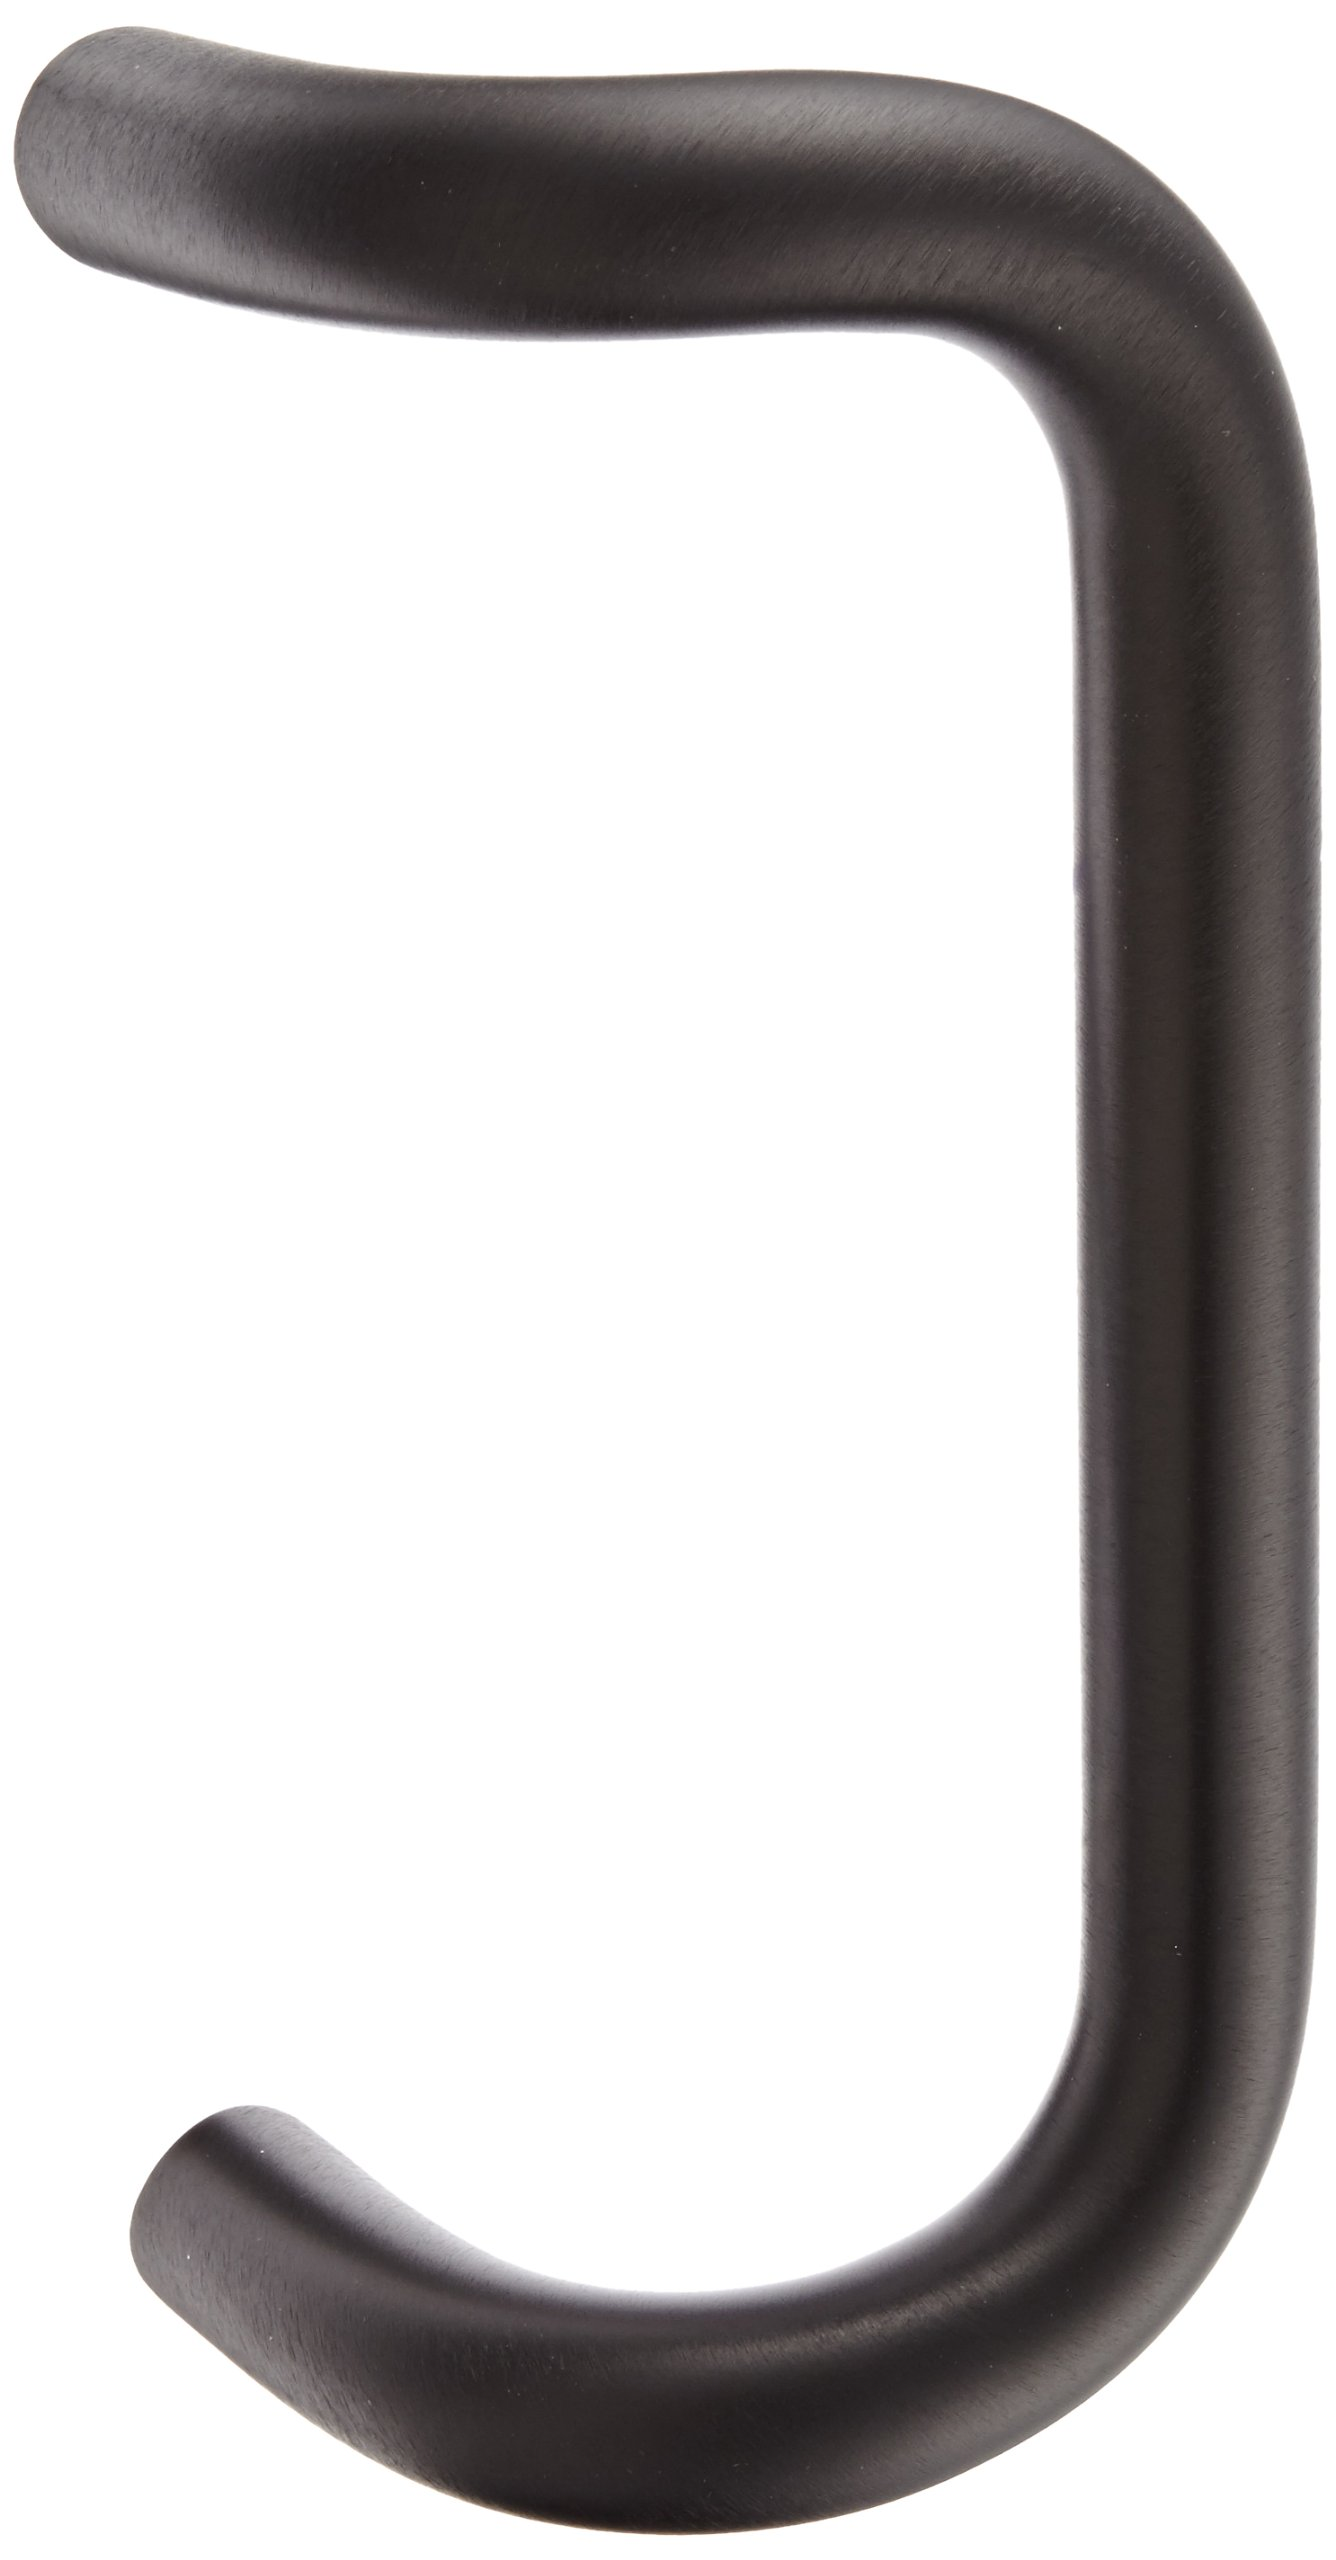 Rockwood BF157A.313 Aluminum 90-Degree Offset Door Pull, 1'' Diameter x 9'' Center-to-Center, Through Bolt Mounting for 1-3/4'' Door, Dark Bronze Anodized Finish